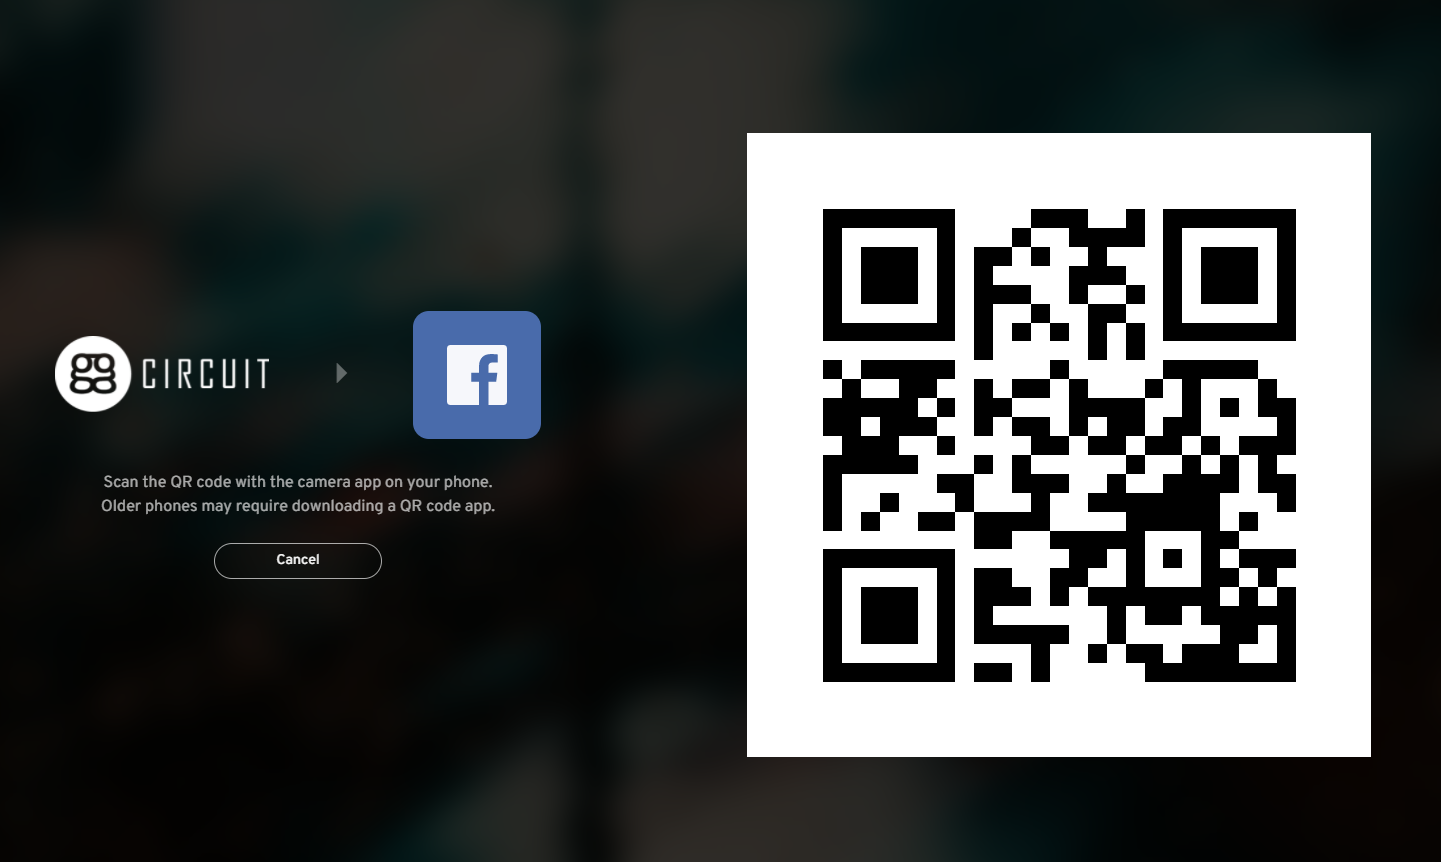 ggLeap client now has the ability to login a user via QR code